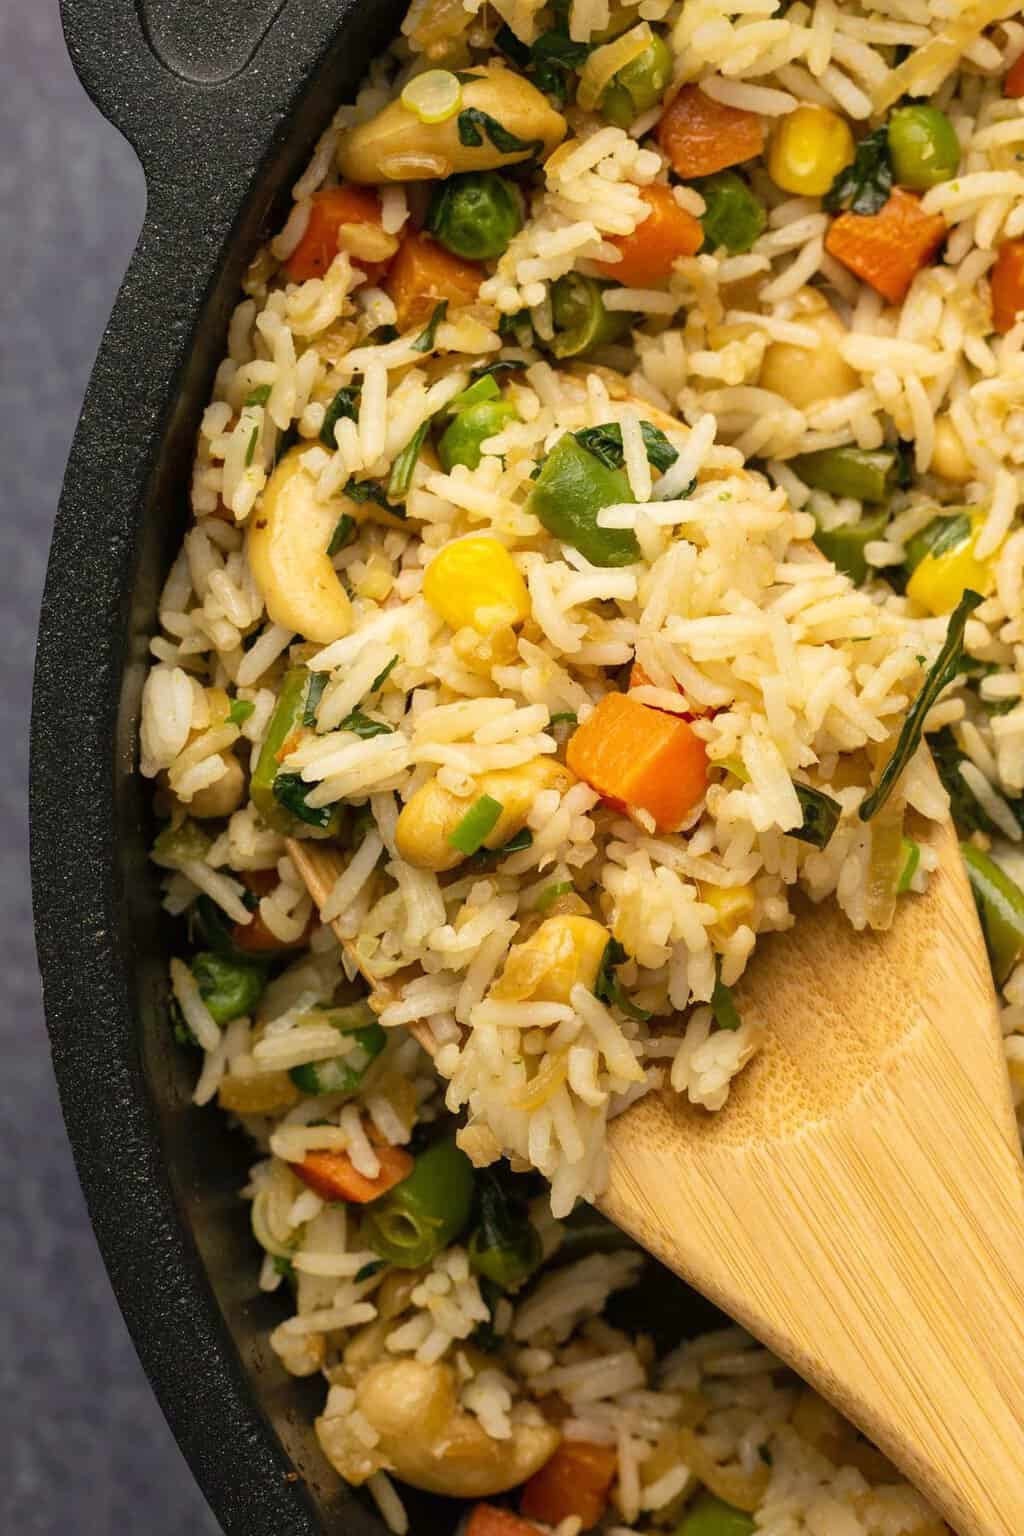 Vegan fried rice in a frying pan with a wooden spoon.